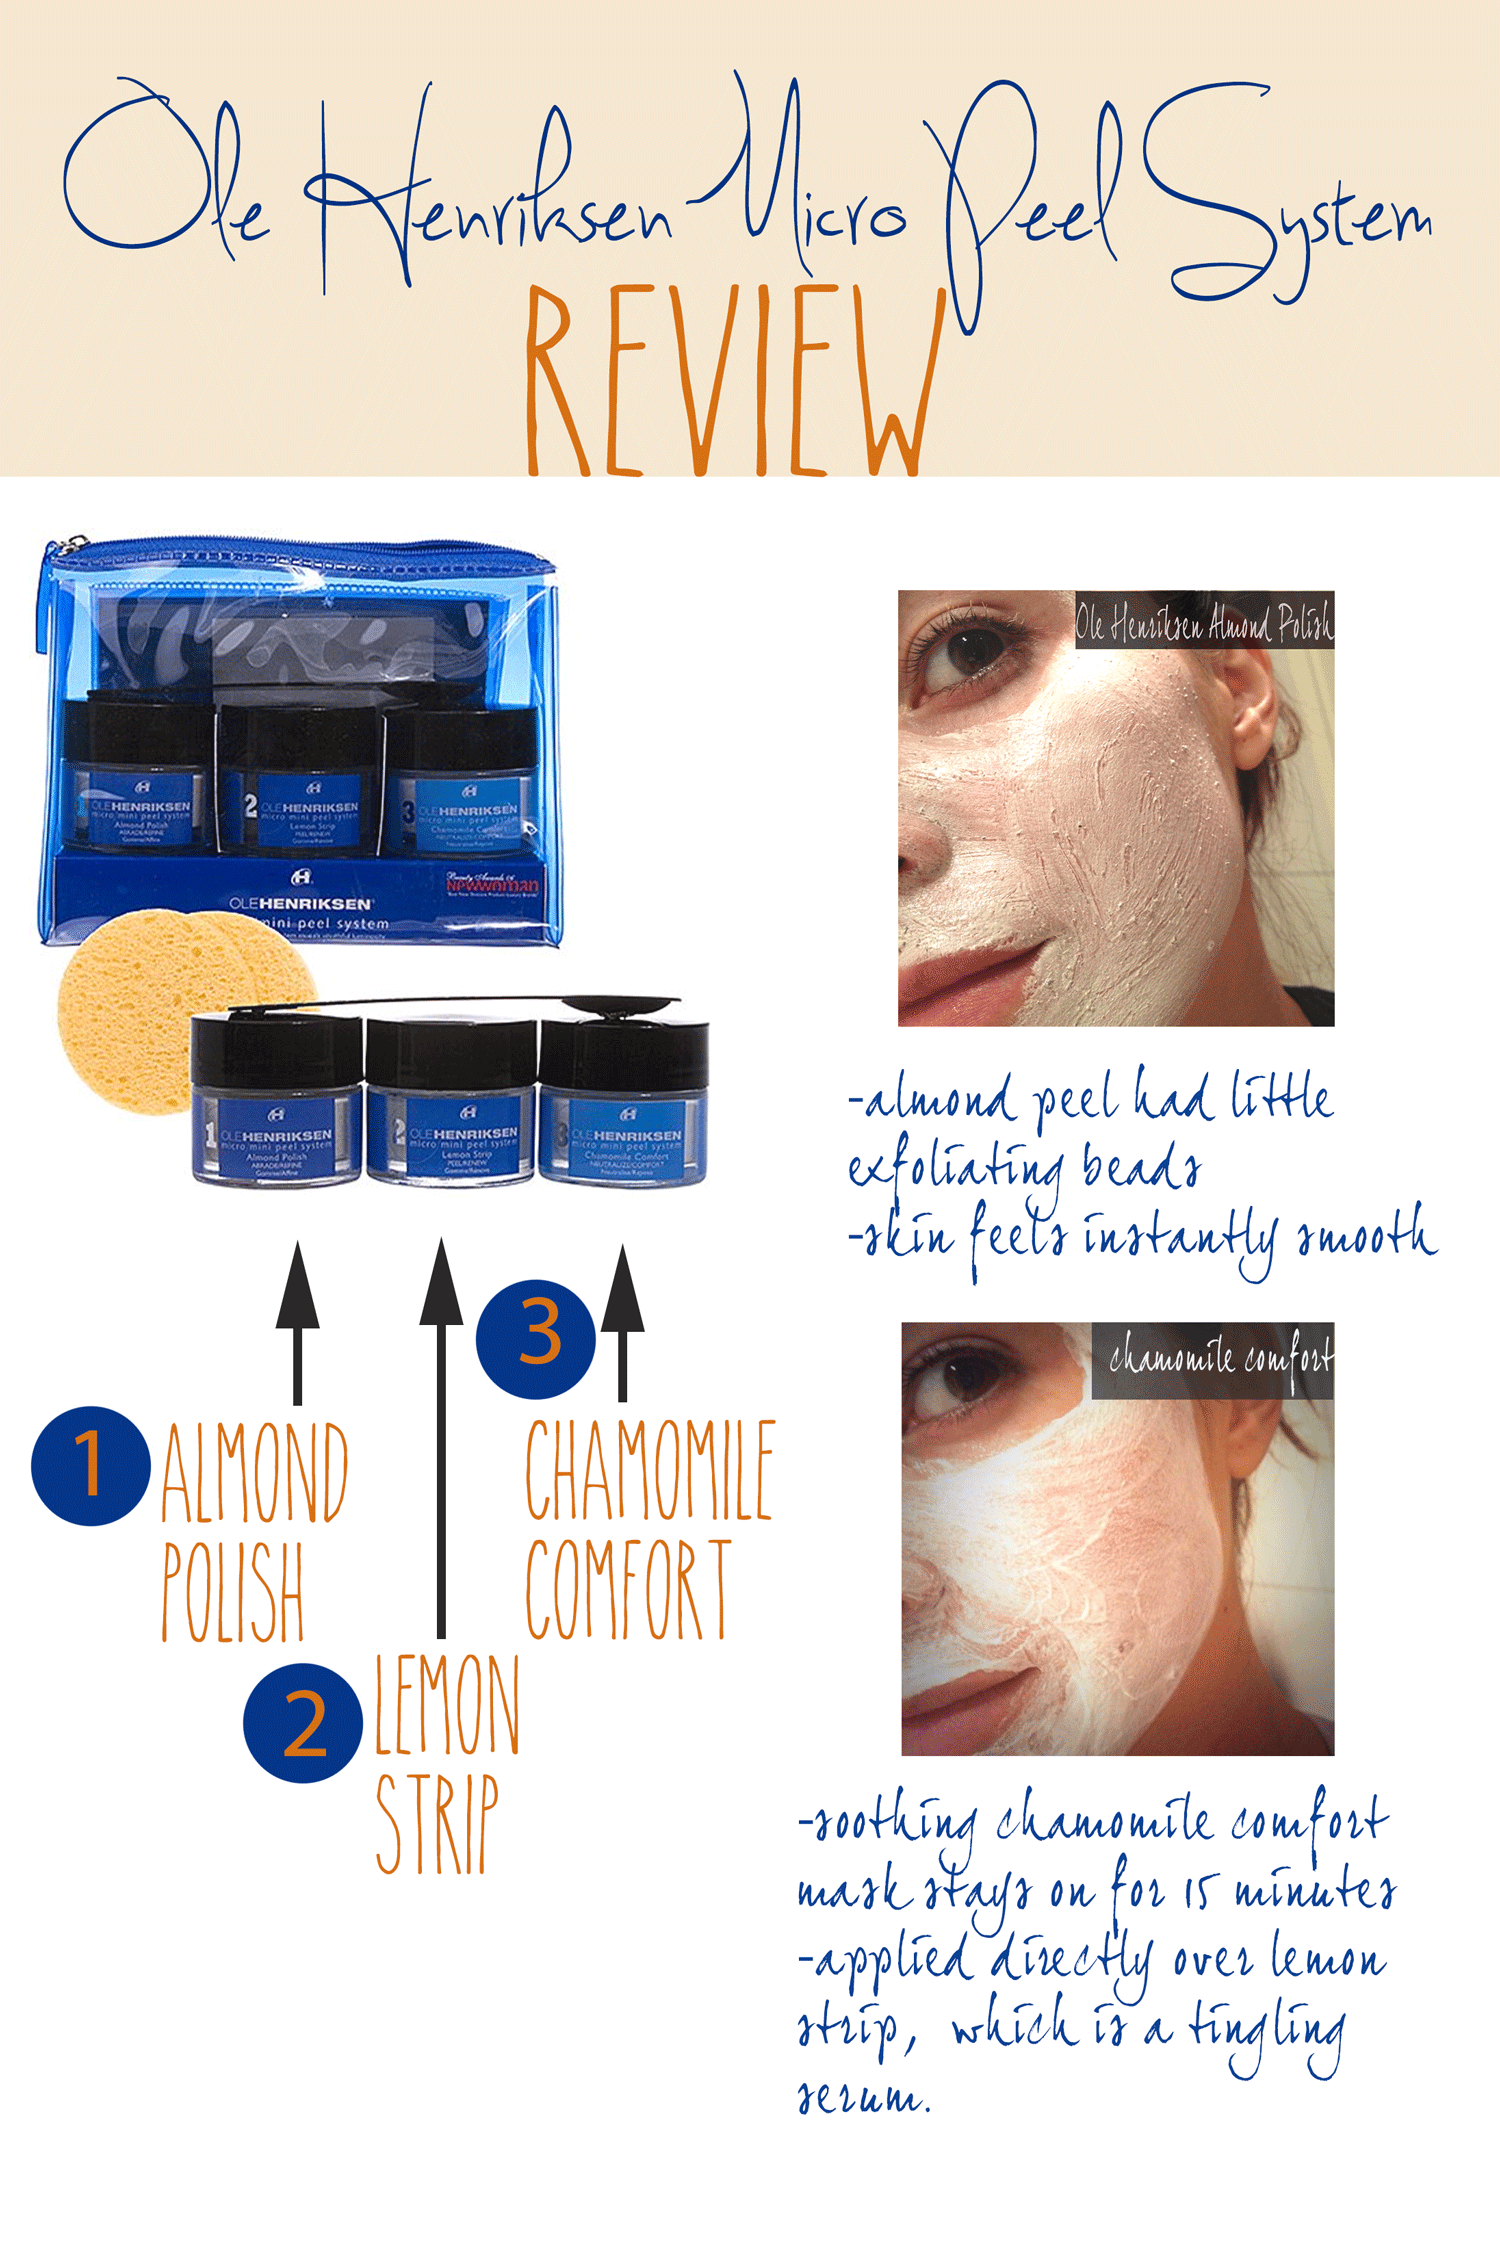 Review of Ole Henriksen Micro Peel System